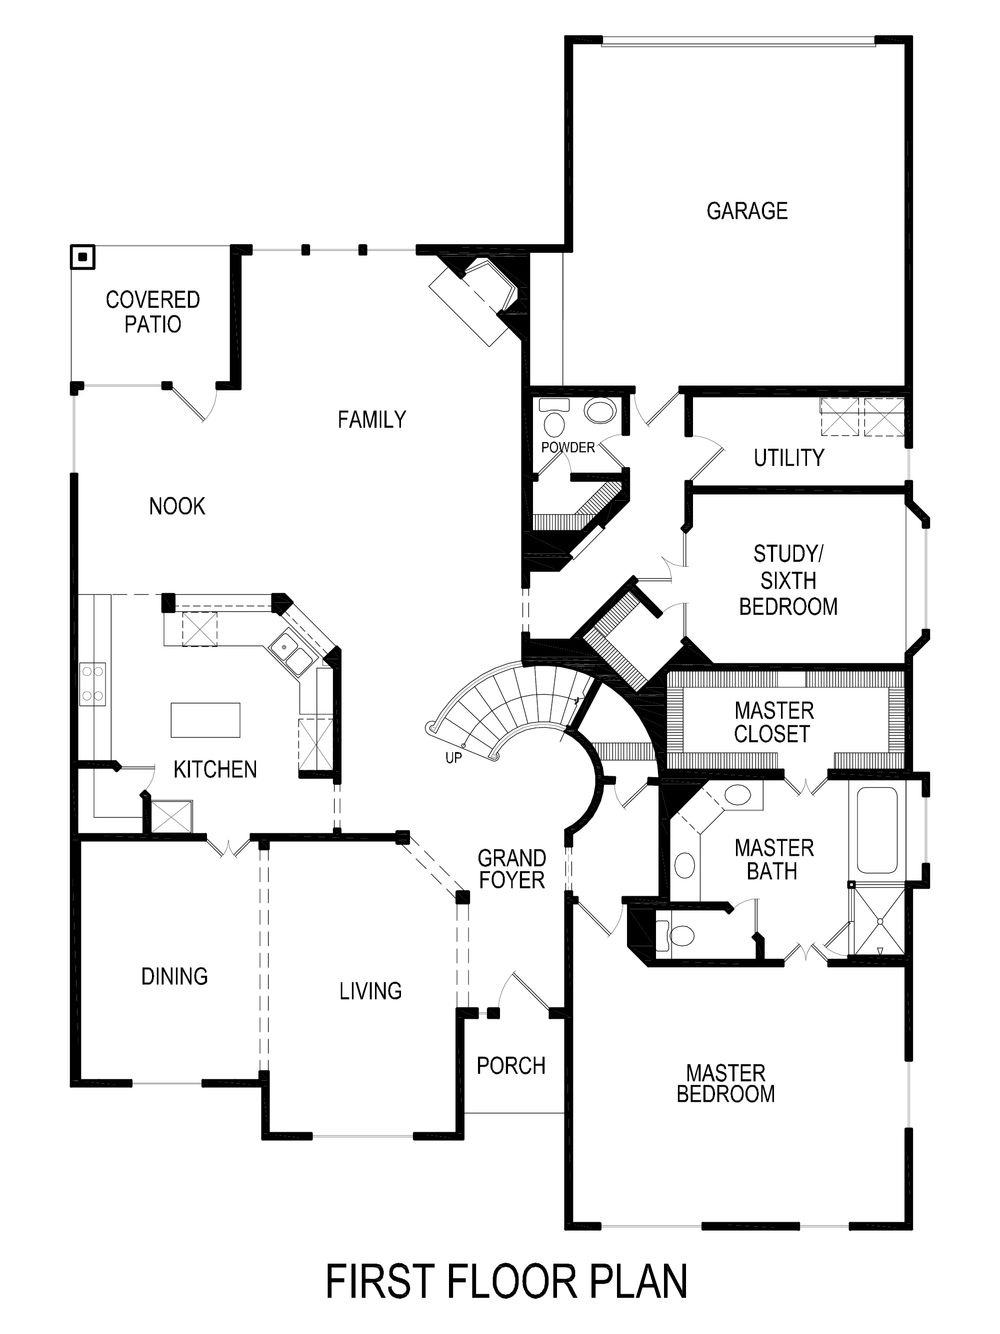 28663438-180723 Texas Home Plans Model on texas home decor, texas home policy, texas home facades, texas building, texas gifts, texas home builders, texas small homes, garage plans with porte cochere house plans, texas home views, texas home history, one story 3000 sq ft. house plans, courtyard house plans, southern living stonebridge cottage house plans, texas home illustrations, texas hill country modern rustic homes, texas rock homes, texas home ideas, unique house plans, texas home drawing, jimmy jacobs custom house plans,